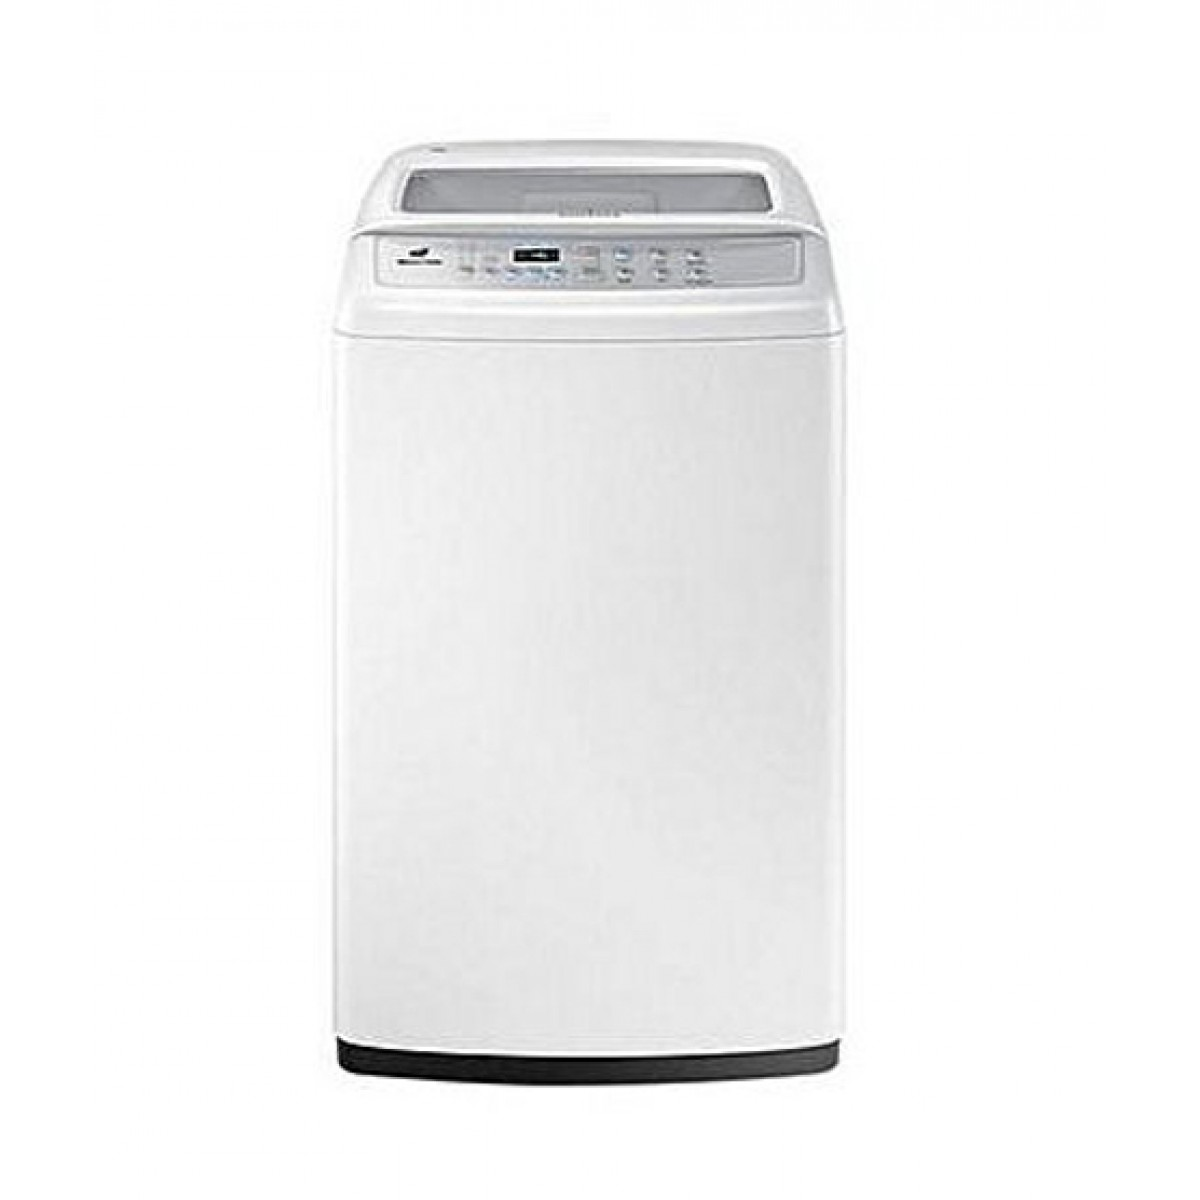 Samsung Fully-Automatic Top Load Washing Machine WA70H4200SW